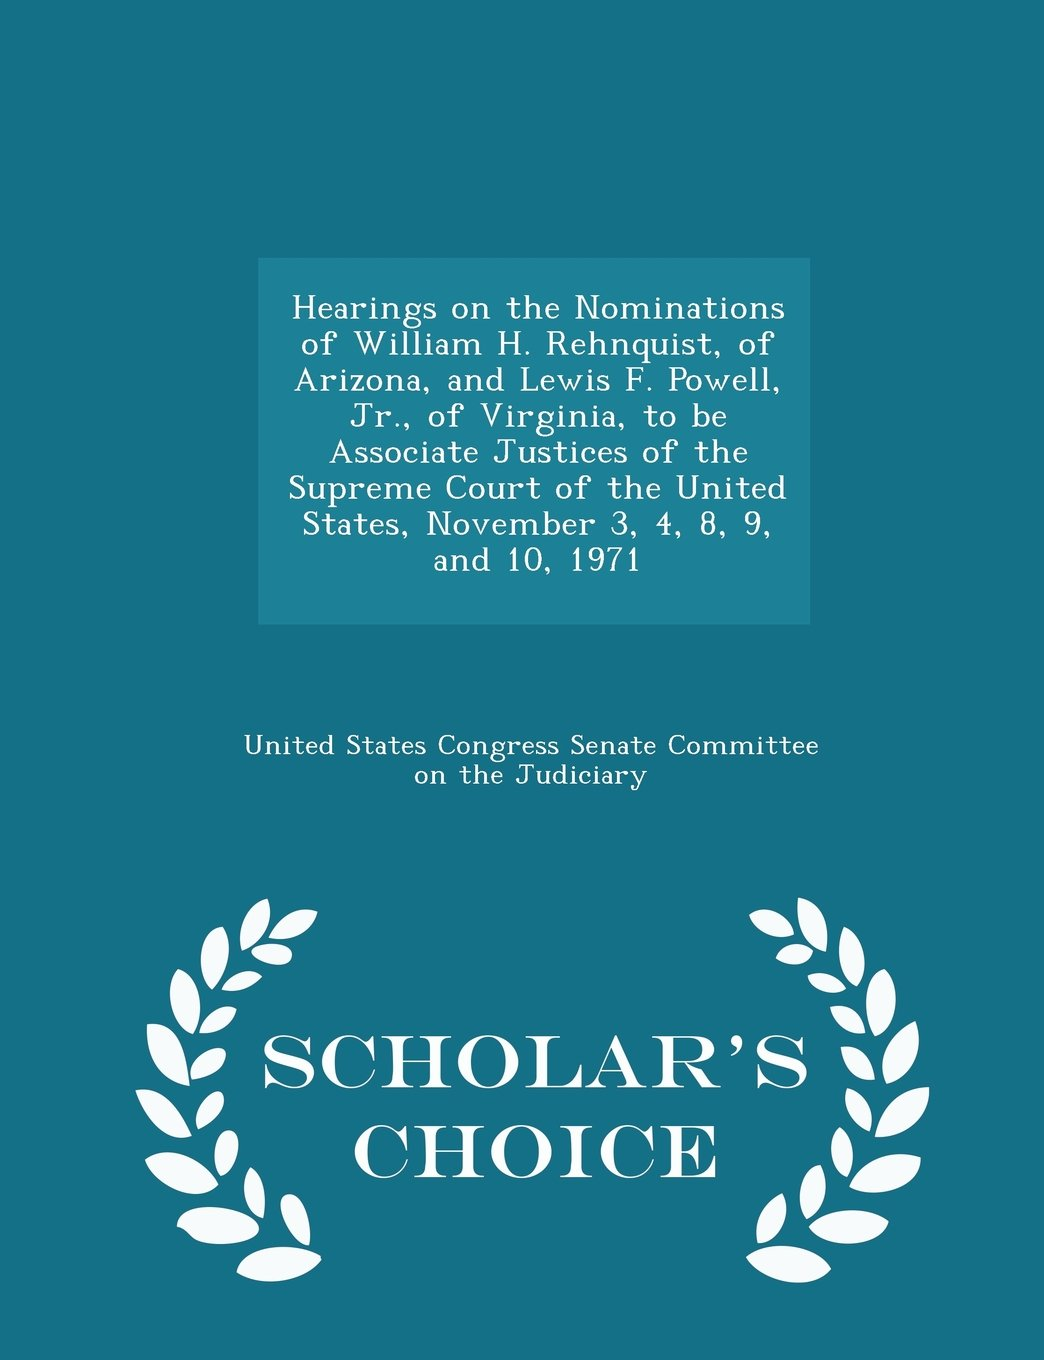 Read Online Hearings on the Nominations of William H. Rehnquist, of Arizona, and Lewis F. Powell, Jr., of Virginia, to be Associate Justices of the Supreme Court ... 8, 9, and 10, 1971 - Scholar's Choice Edition ebook